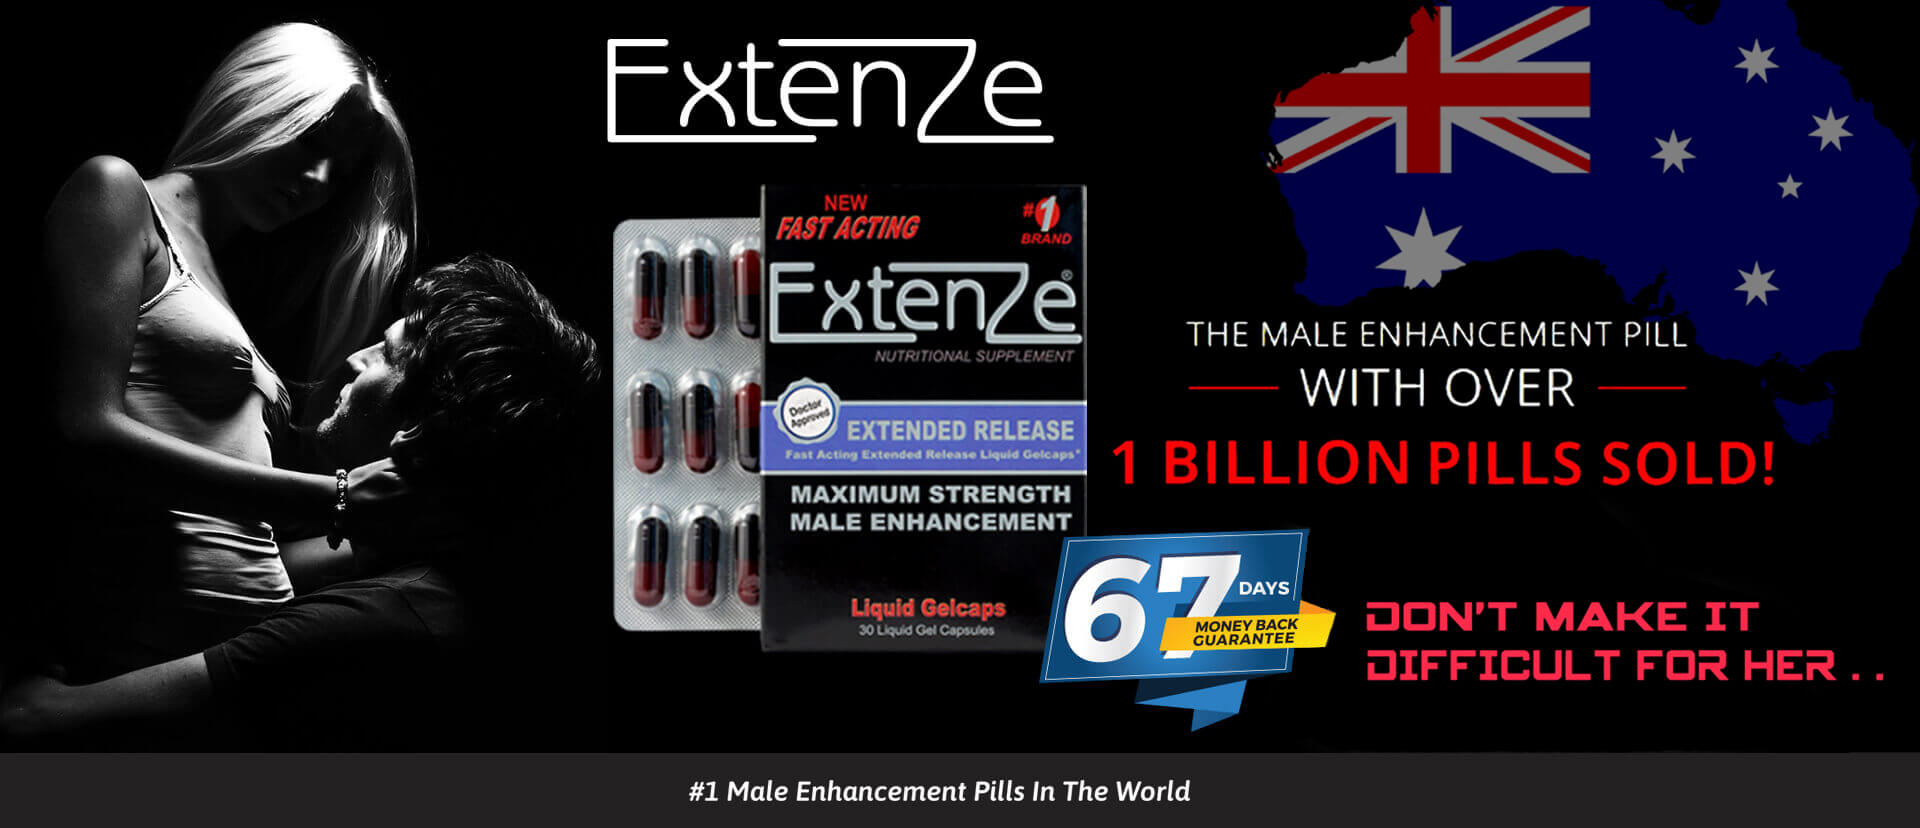 best Male Enhancement Pills  Extenze under 500 2020